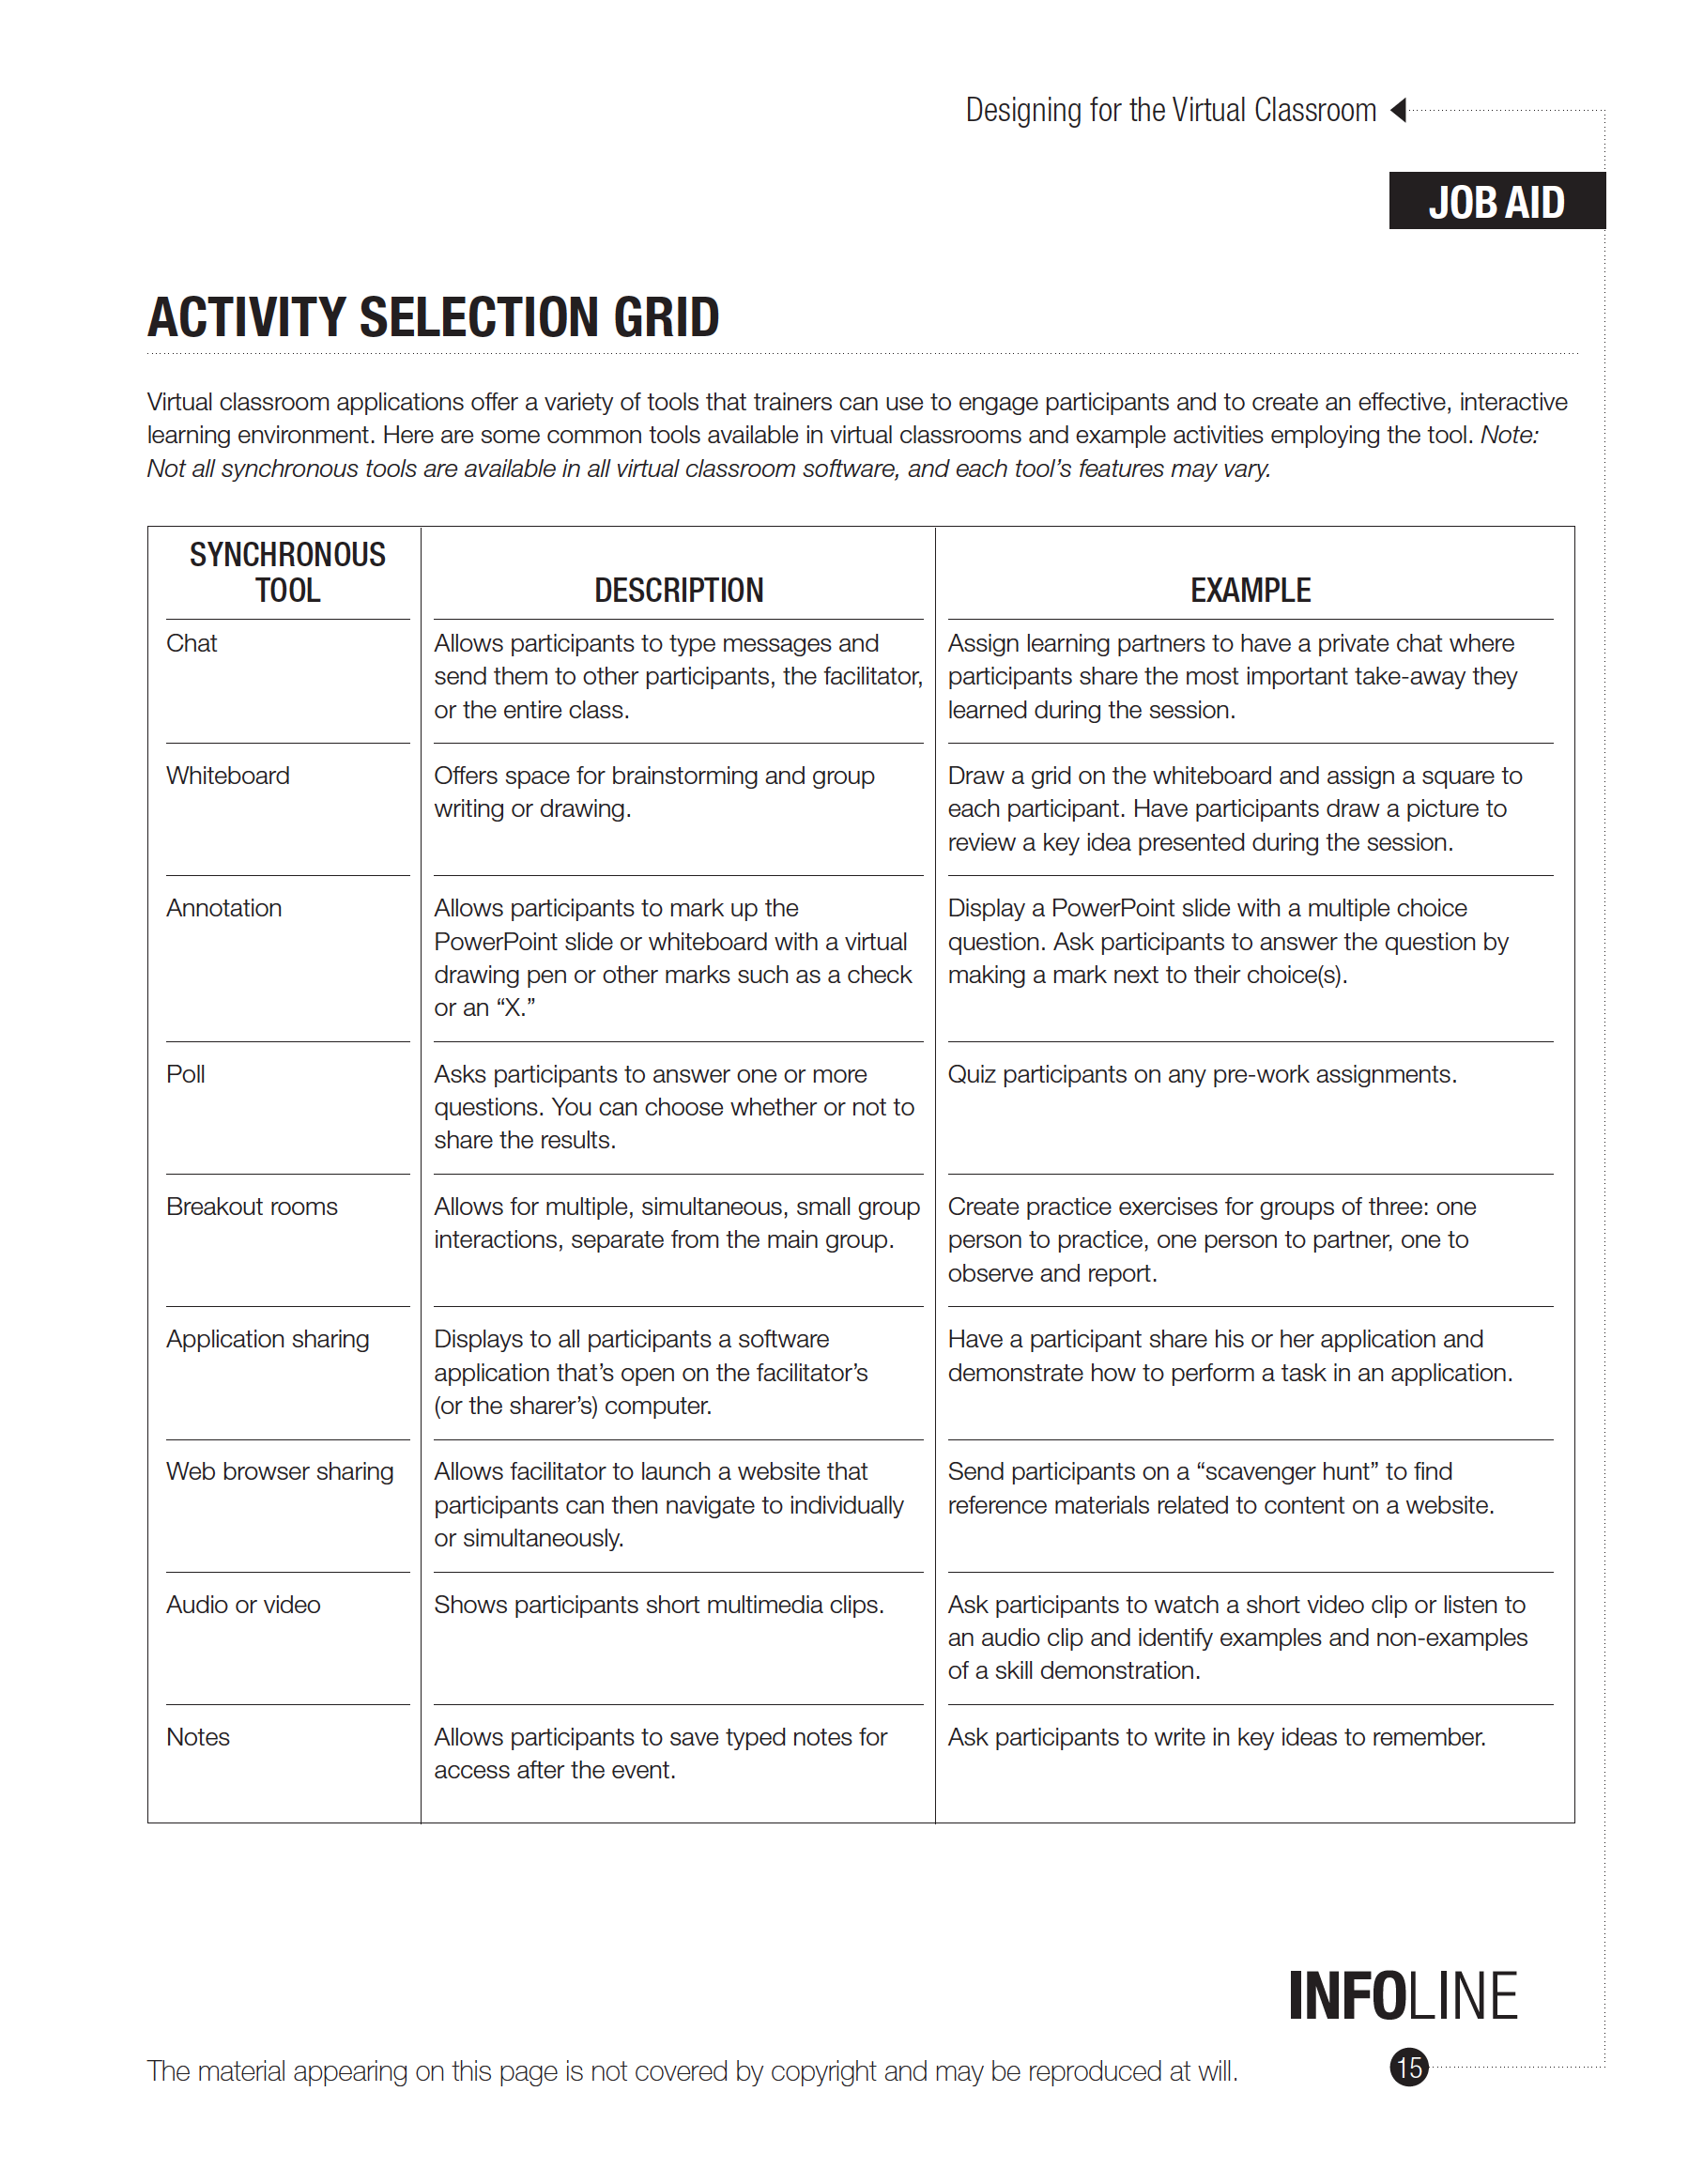 facilitation plan template - virtual activity selection grid cindy huggett